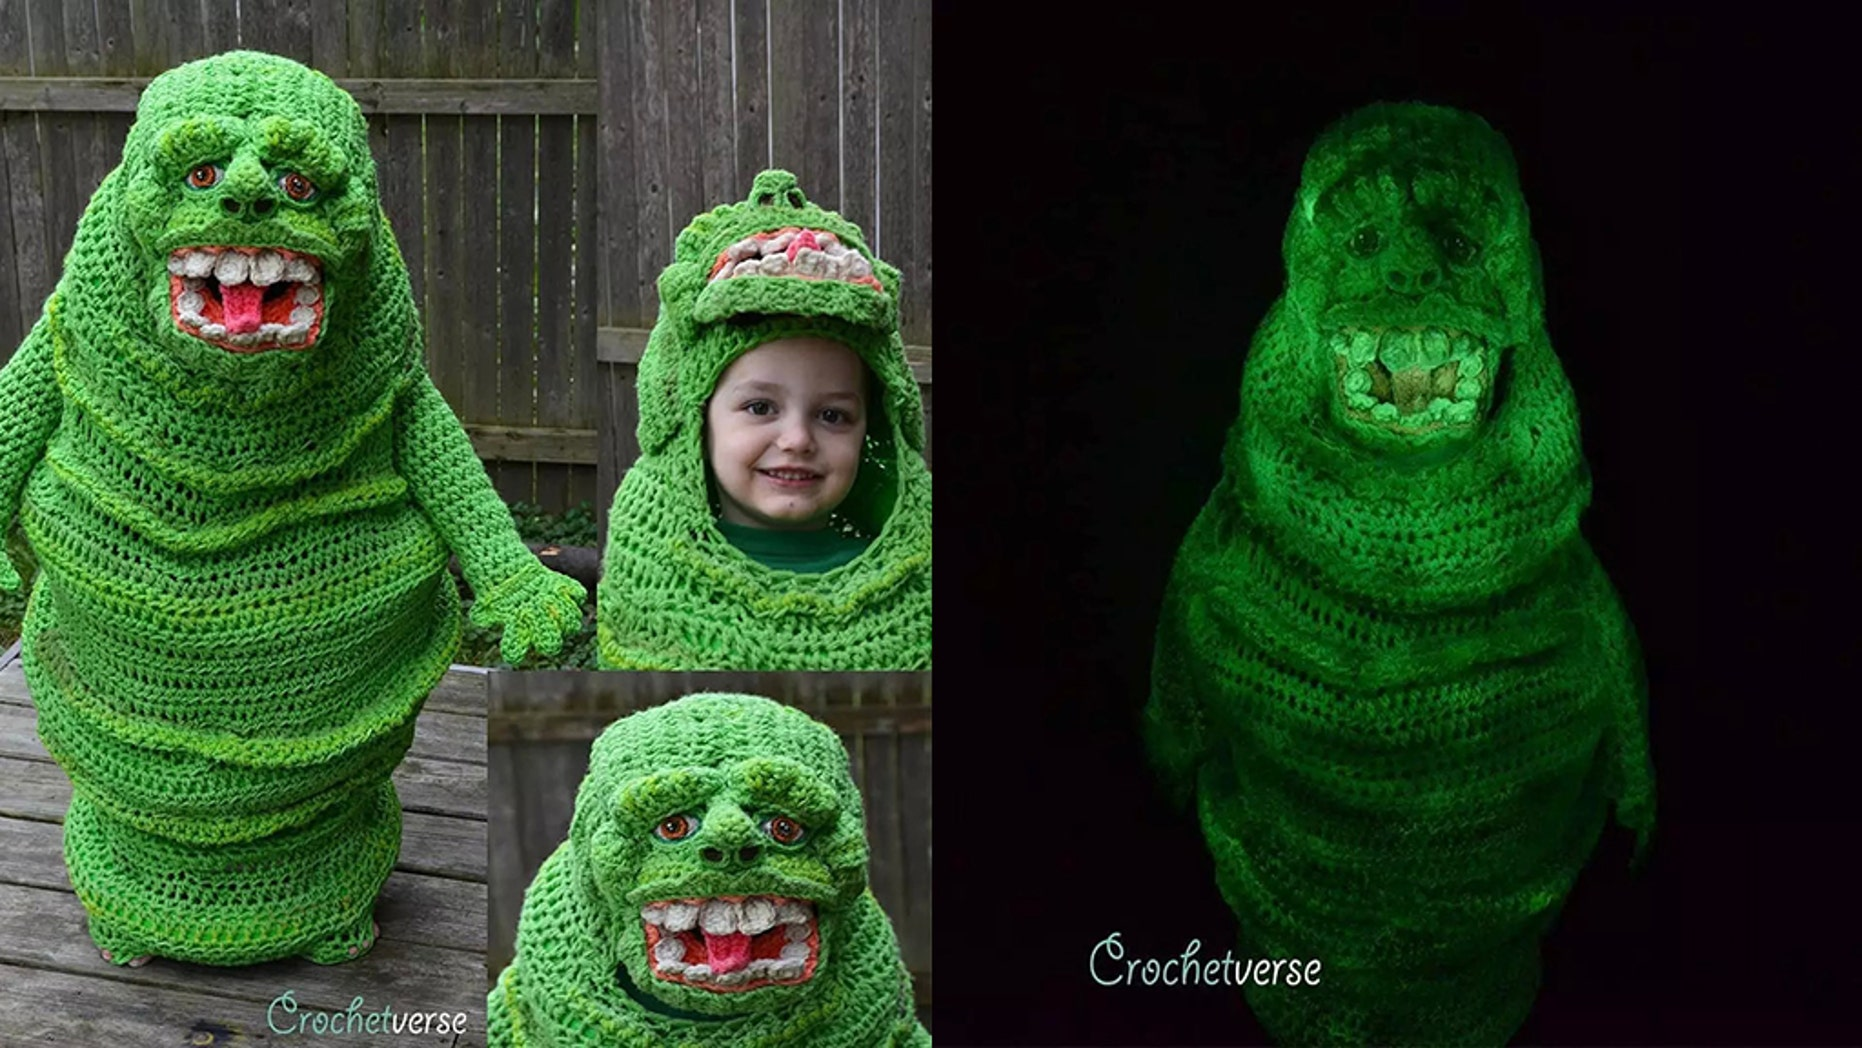 Ohio Mom Goes Viral For Crocheting Elaborate Halloween Costumes For